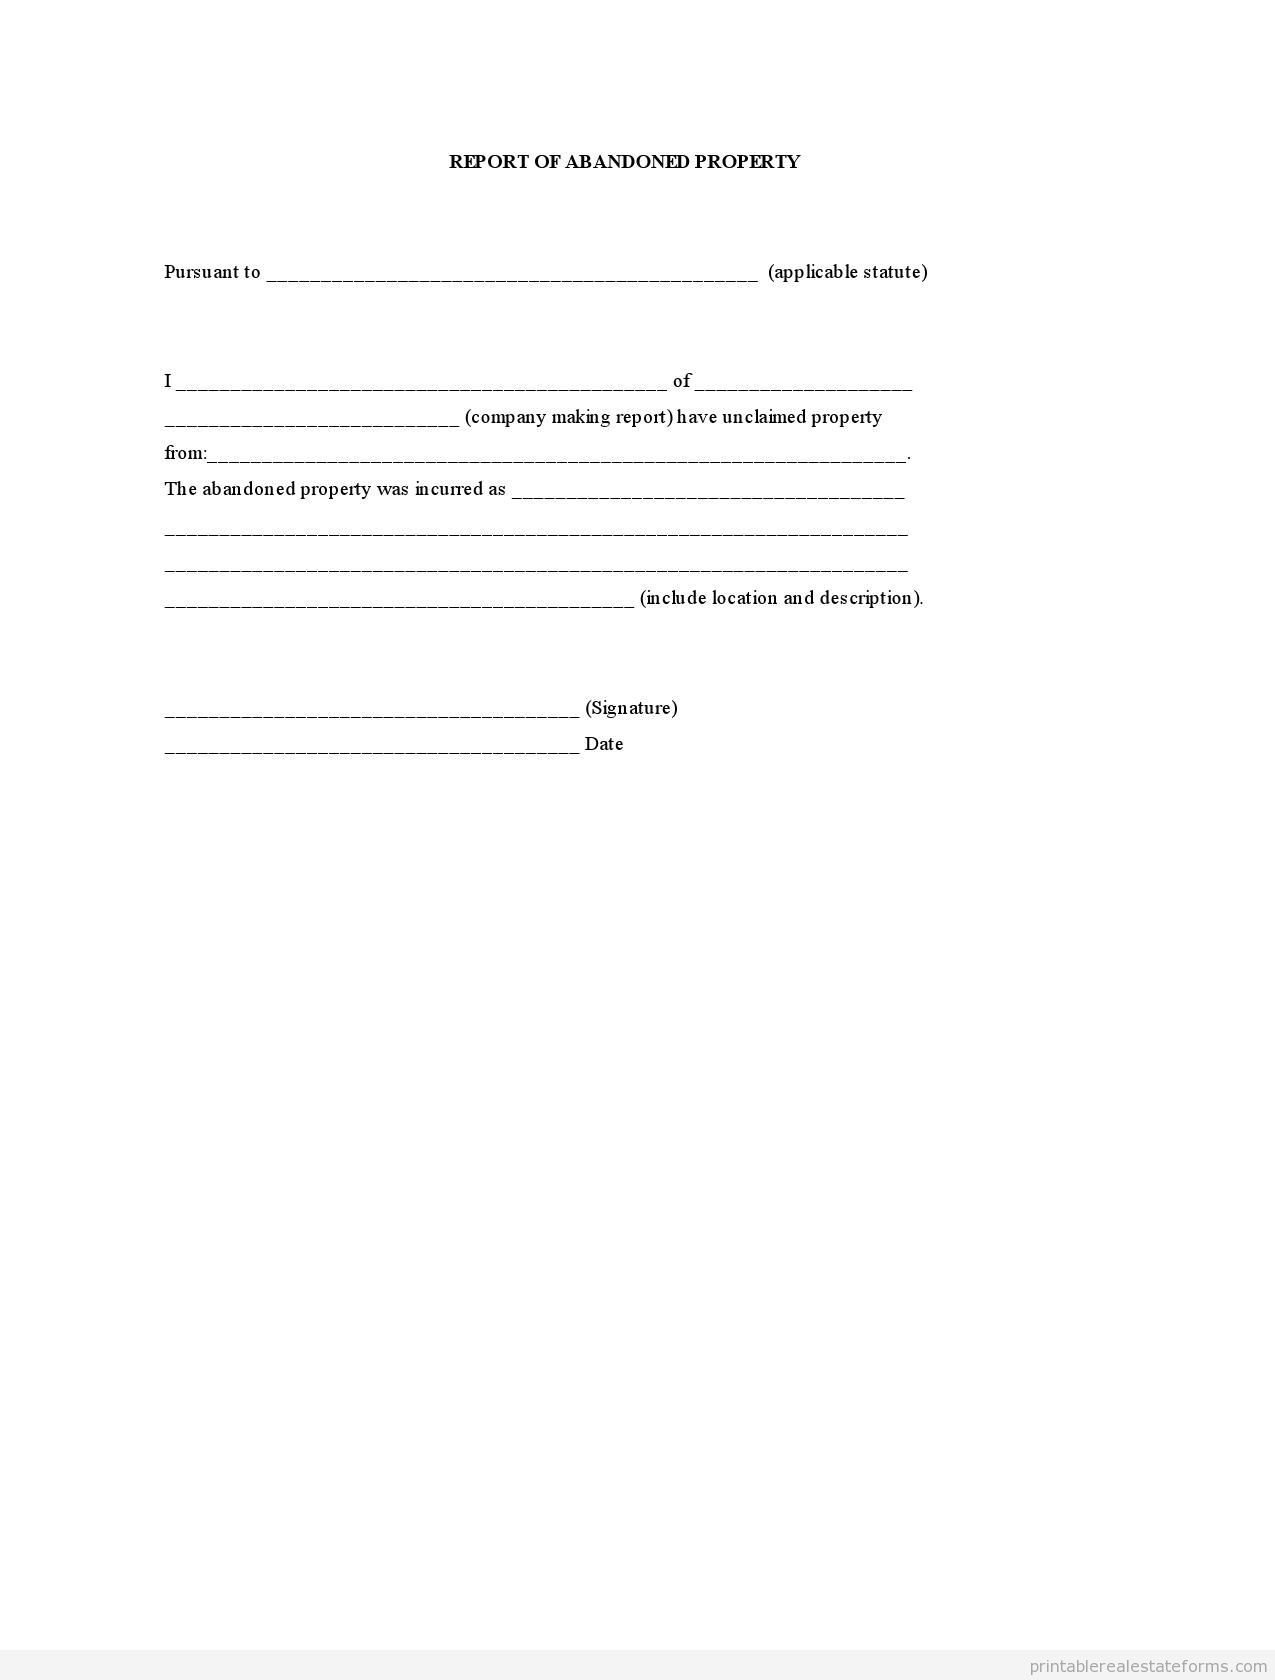 Sample Printable Report Of Abandoned Property Form  Sample Real